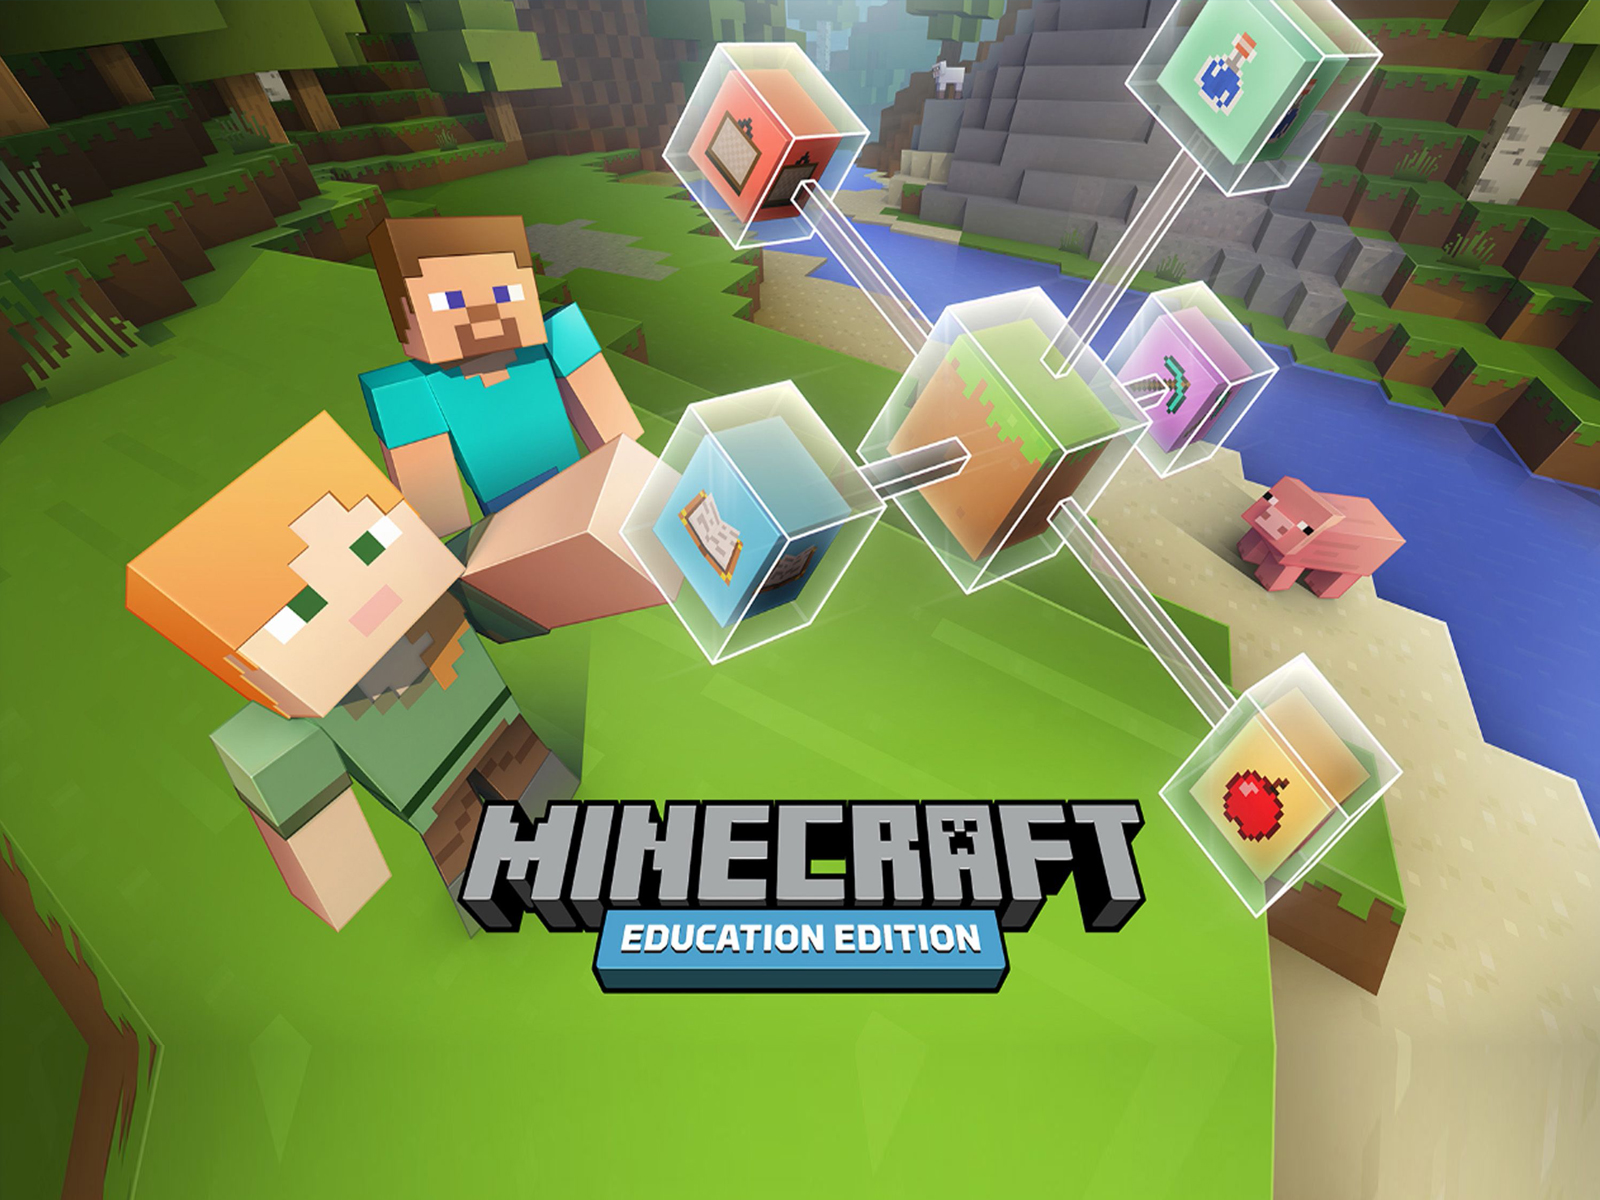 Ücretsiz Minecraft Education Edition ve Office 365